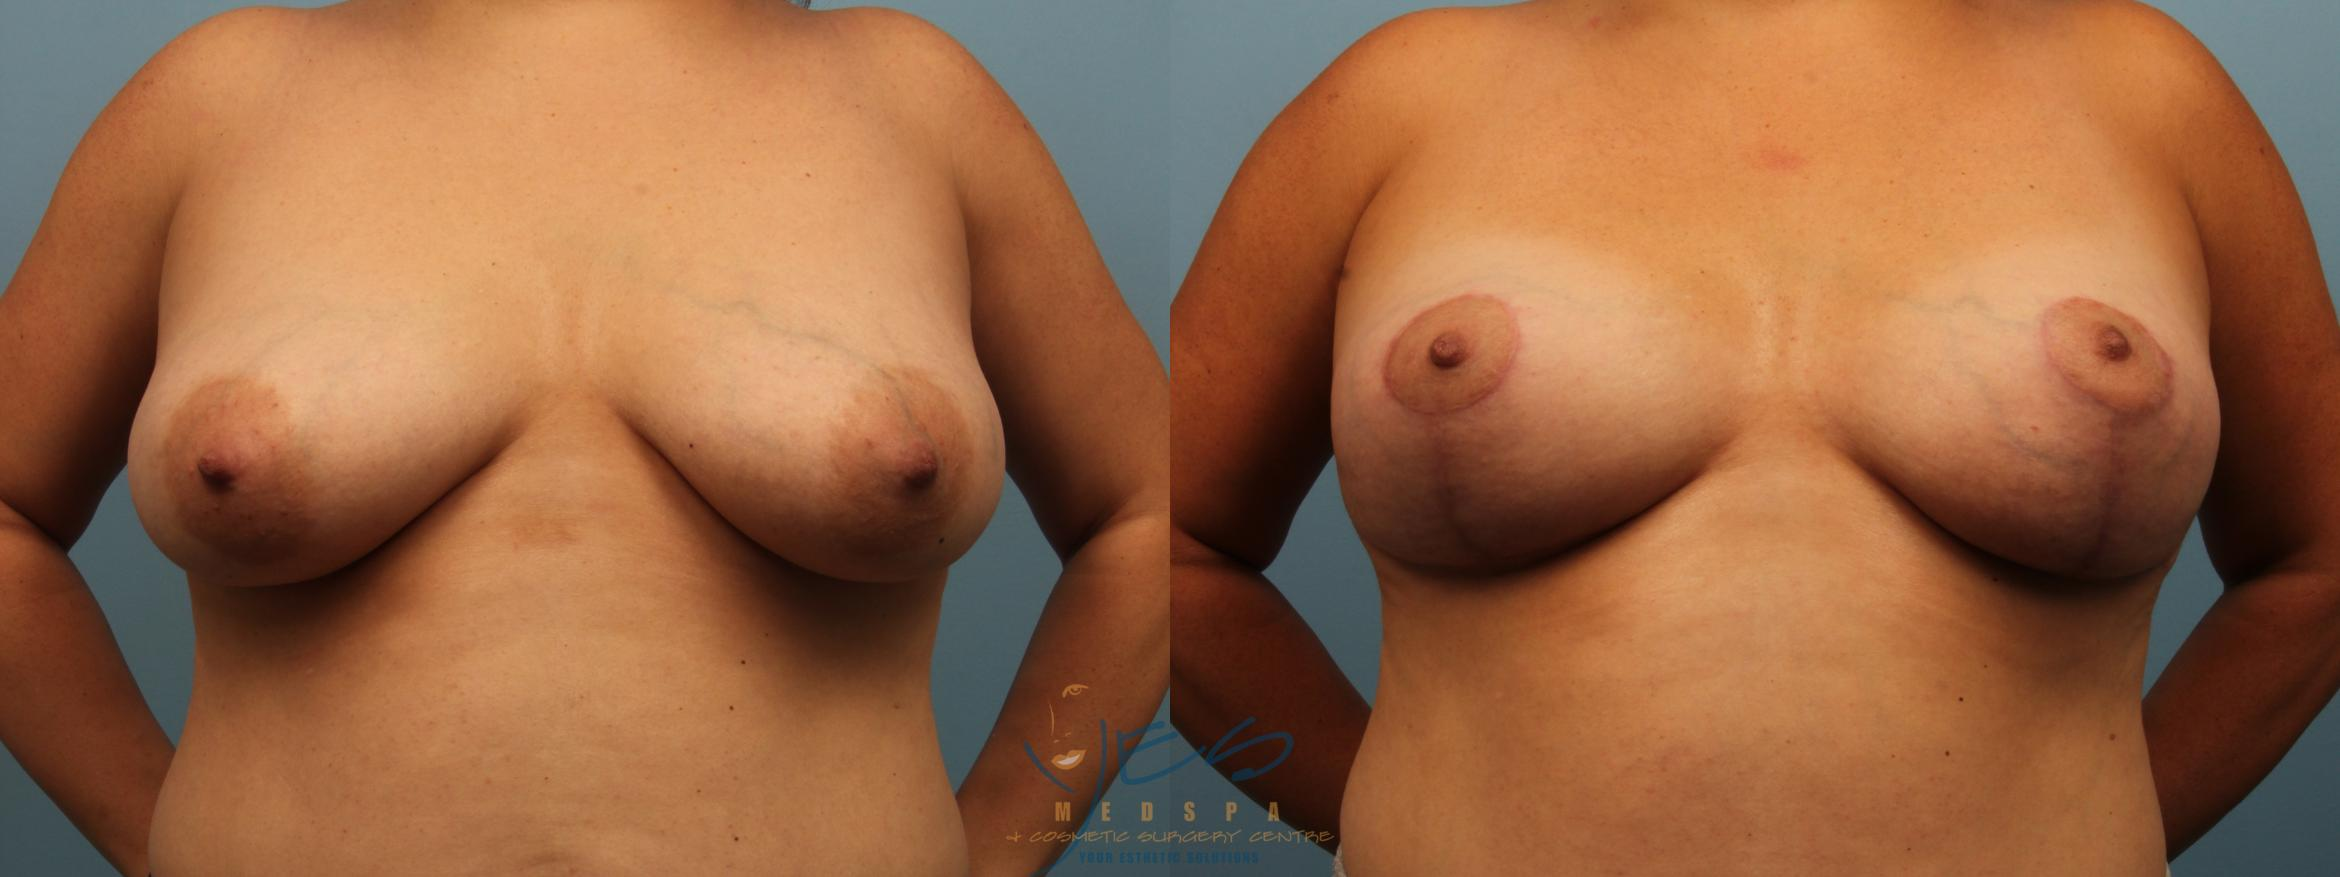 Breast Lift Case 300 Before & After Front | Vancouver, BC | YES Medspa & Cosmetic Surgery Centre